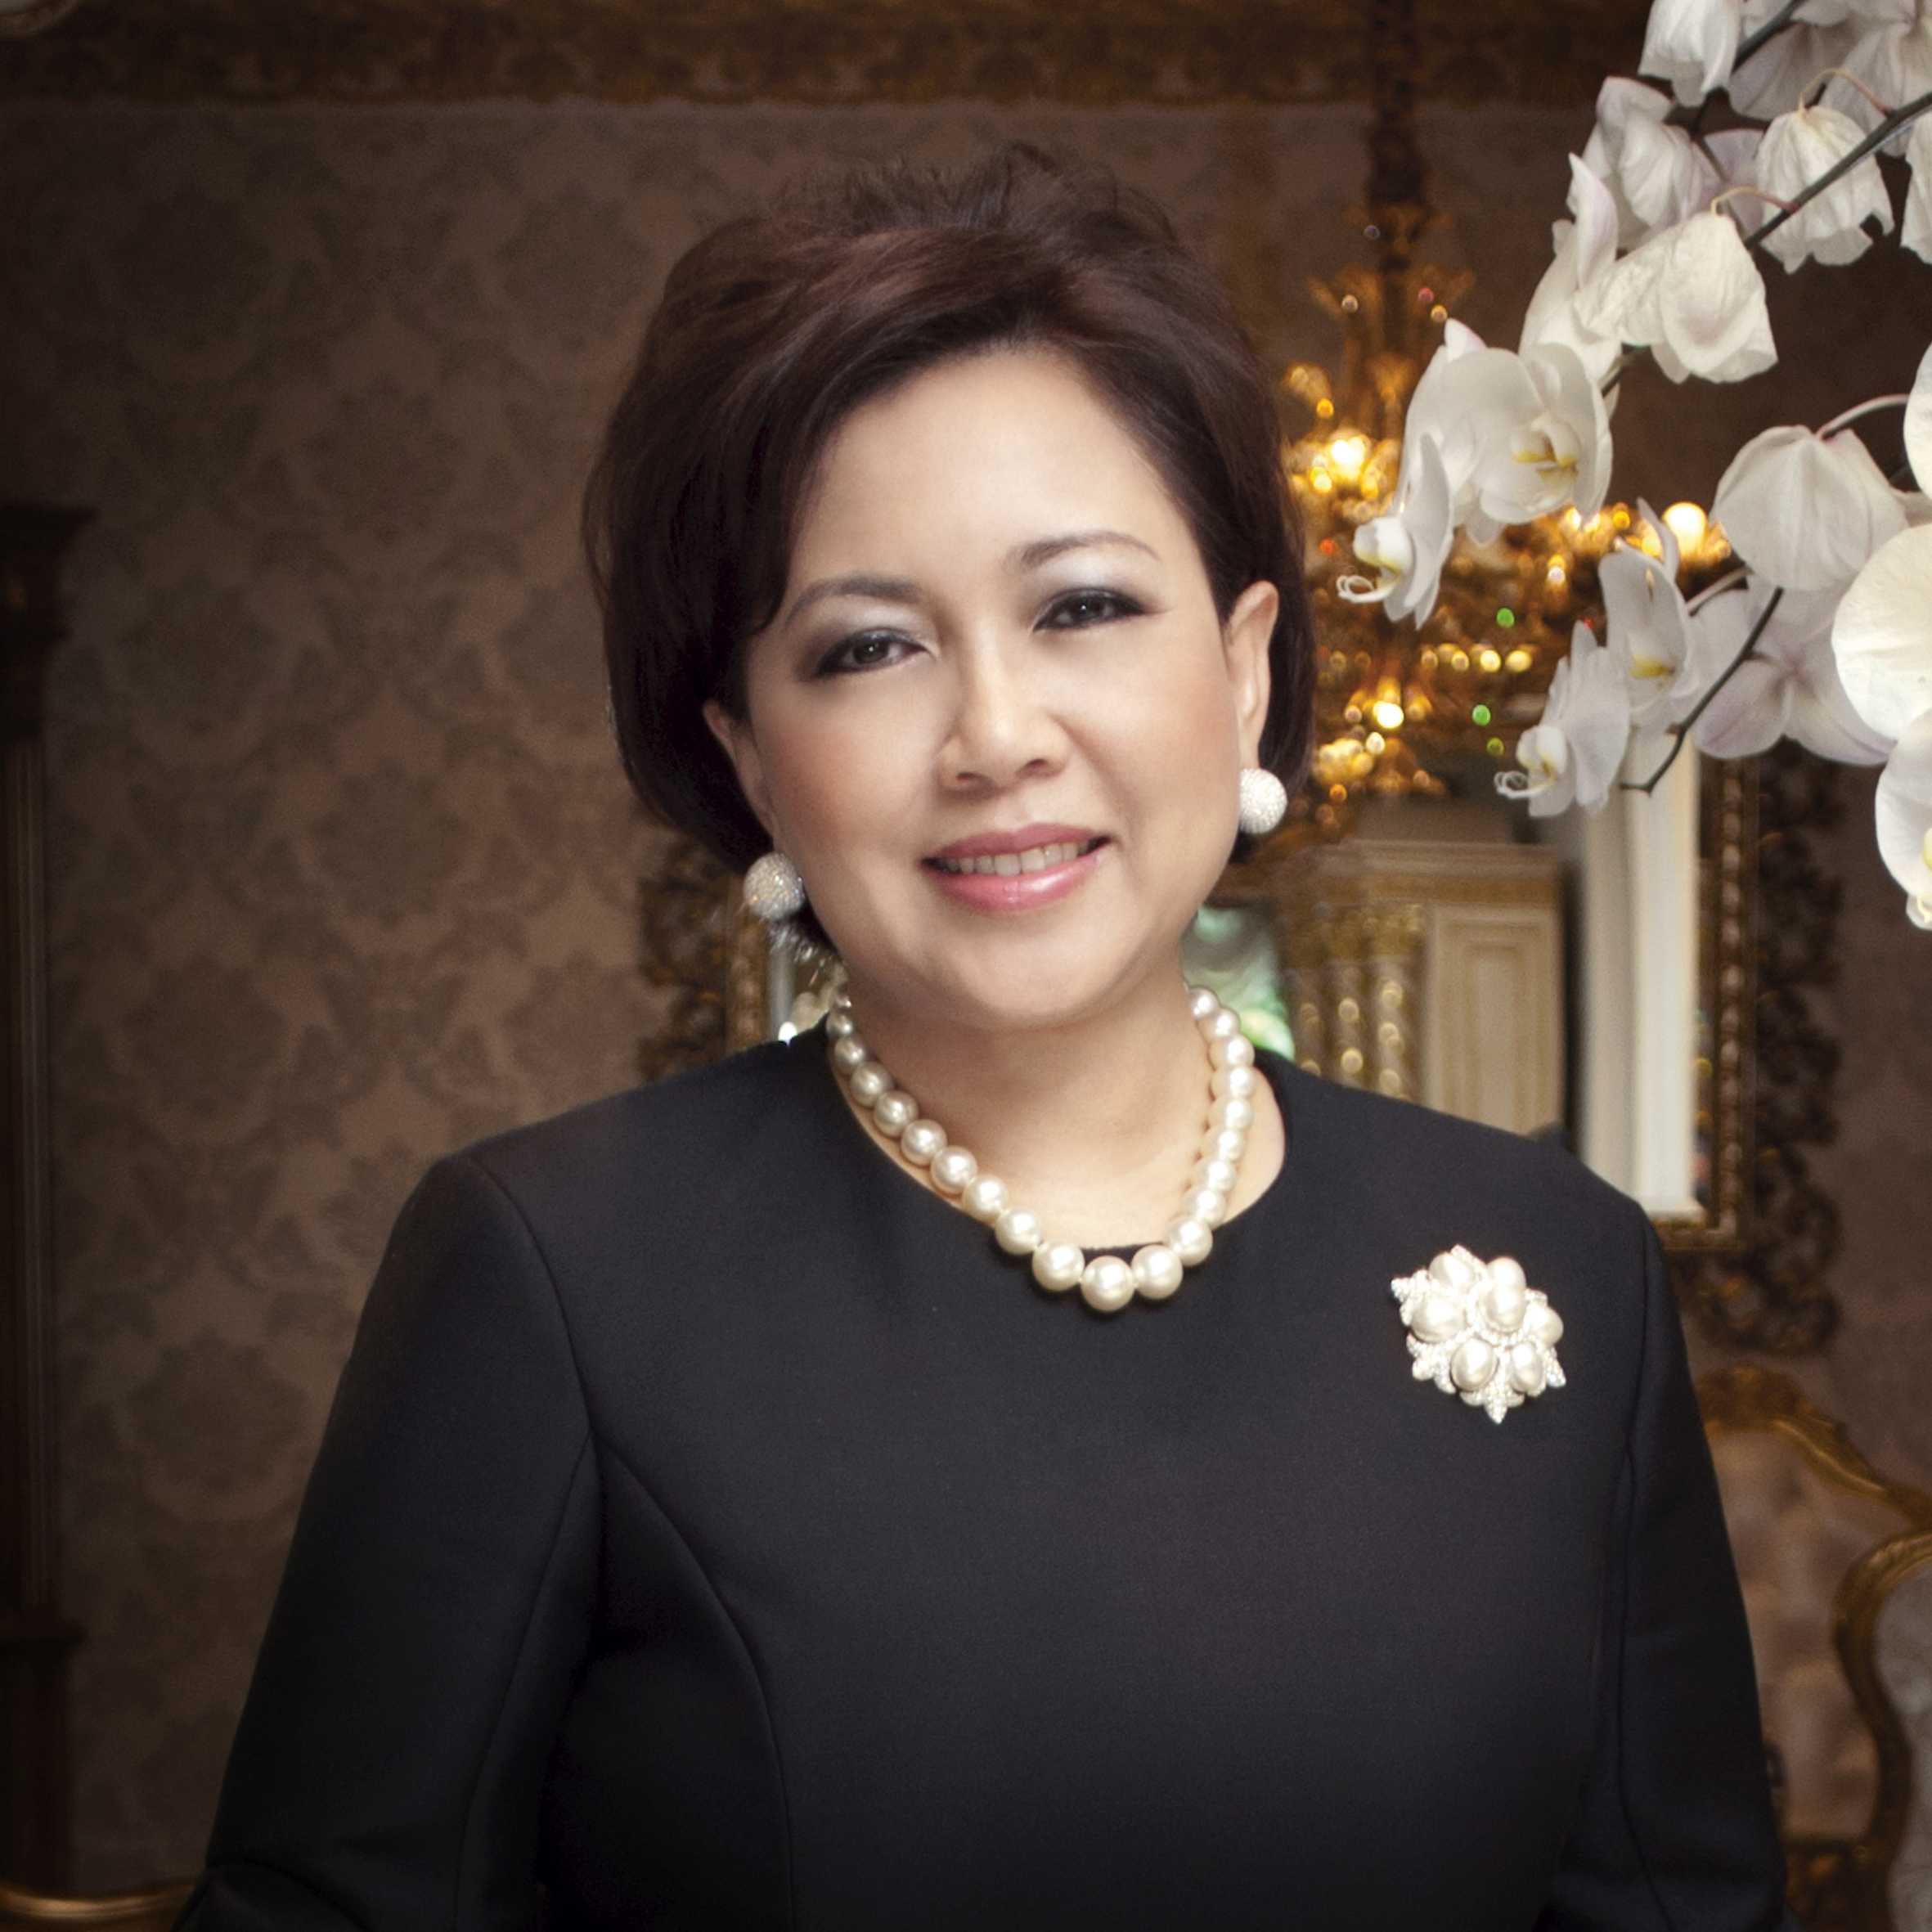 Evelina F. Pietruschka is president commissioner (chairperson) of WanaArtha Life, an Indonesian life insurer.